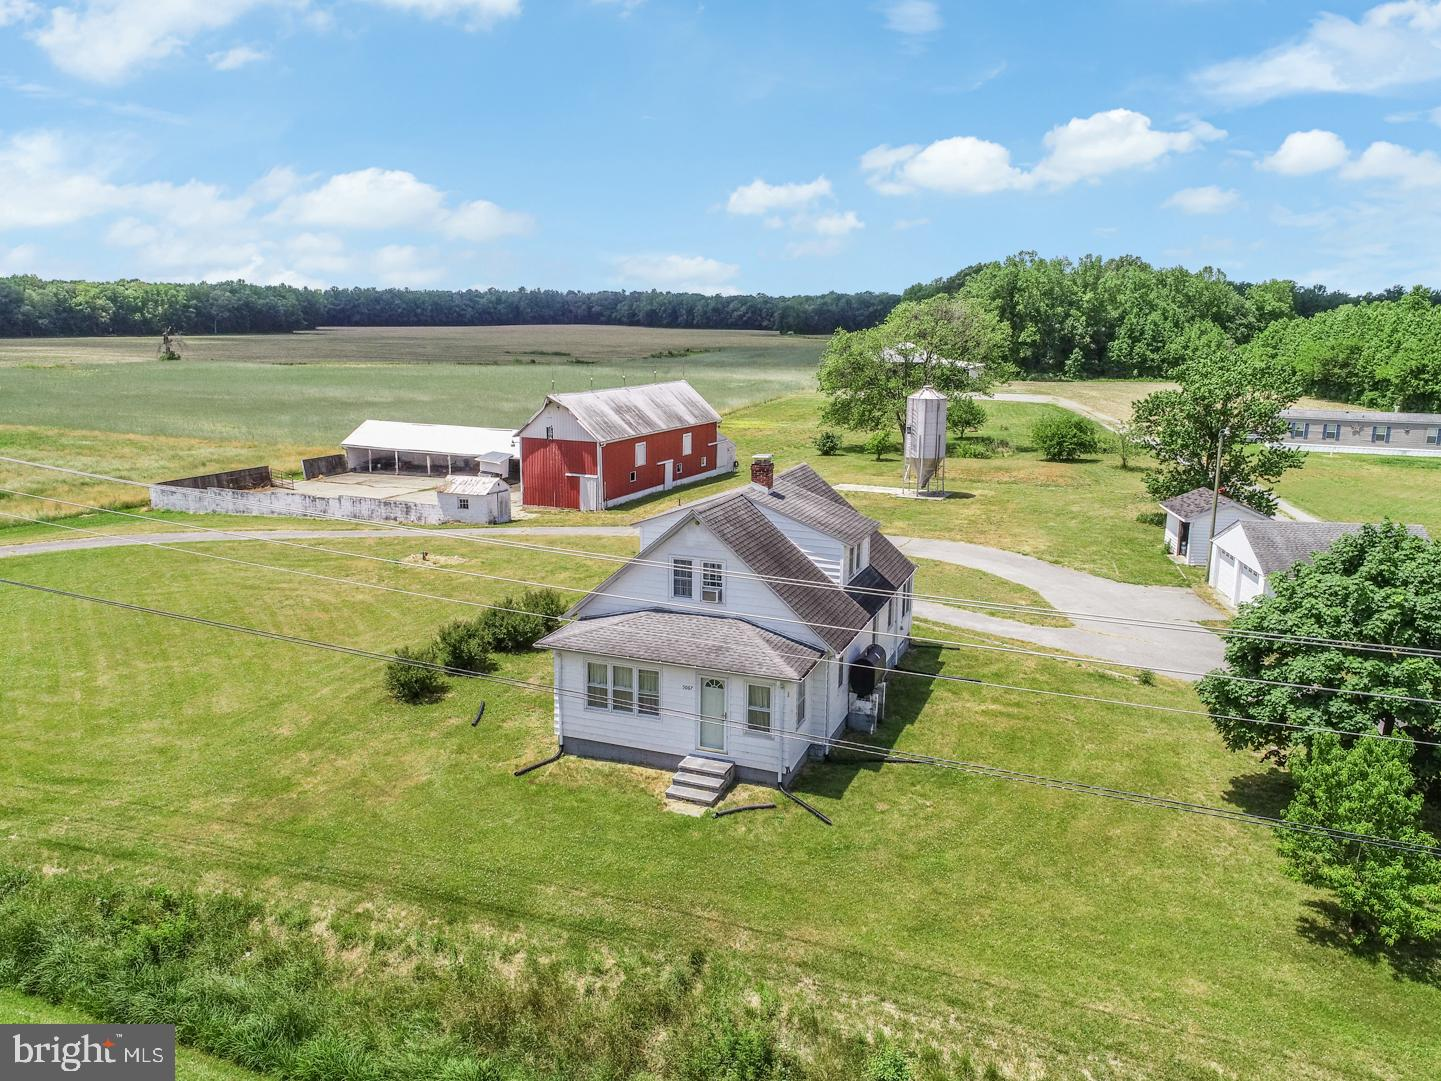 Welcome to the farm! Here, at 5067 Hopkins Cemetery Rd, you can appreciate all the wonders of nature and the freedom of wide open spaces.  This 16.88 acre farm includes a 3 bedroom, 2 bath home, detached 2 car garage, large cattle barn with extensions and 90' x 65 ' concrete stock yard,  90' by 50' pole building for large farm equipment storage, small grain silo, tool shed and over 10 -12 acres of open fields for cultivation. There is electrical power in the cattle barn, large pole building and garage. Until this year, fields have been leased and cultivated with regular crop rotations of corn, soybean, barley, sorghum, etc.  The house sits up on the hill at the front of the property and provides for a scenic overview of the land and structures.  Many recent improvements have made this a charming, farmhouse.  The country kitchen is virtually new from floor to ceiling. The  refrigerator, dishwasher and microwave/convention oven were recently replaced and the kitchen is a dream to cook in, with plenty of counter space for the many cooks in the house and enough storage for all the pots, pans and gadgets any gourmet chef could ever desire. For the technology proficient, the house has high speed internet access - great for the home office or remote learning. Other improvements include upgraded electrical service, new AC unit & air handler, blown-in insulation in the attic and insulation panels in storage eaves,  double lined chimney flue to accommodate the wood stove, and a new deep well (325') and pump for a clean refreshing water supply.  When you explore the grounds you will find many different fruit trees and bushes as well as an asparagus bed to enjoy. In the evening, relax by the fire pit and indulge in some s'mores and take in the beauty of  the evening sky - watch shooting stars cross the skies and observe the entire Milky Way!  So if you are ready to start your own farm or simply wish to enjoy the best of country living and have the land help you pay your bills, 